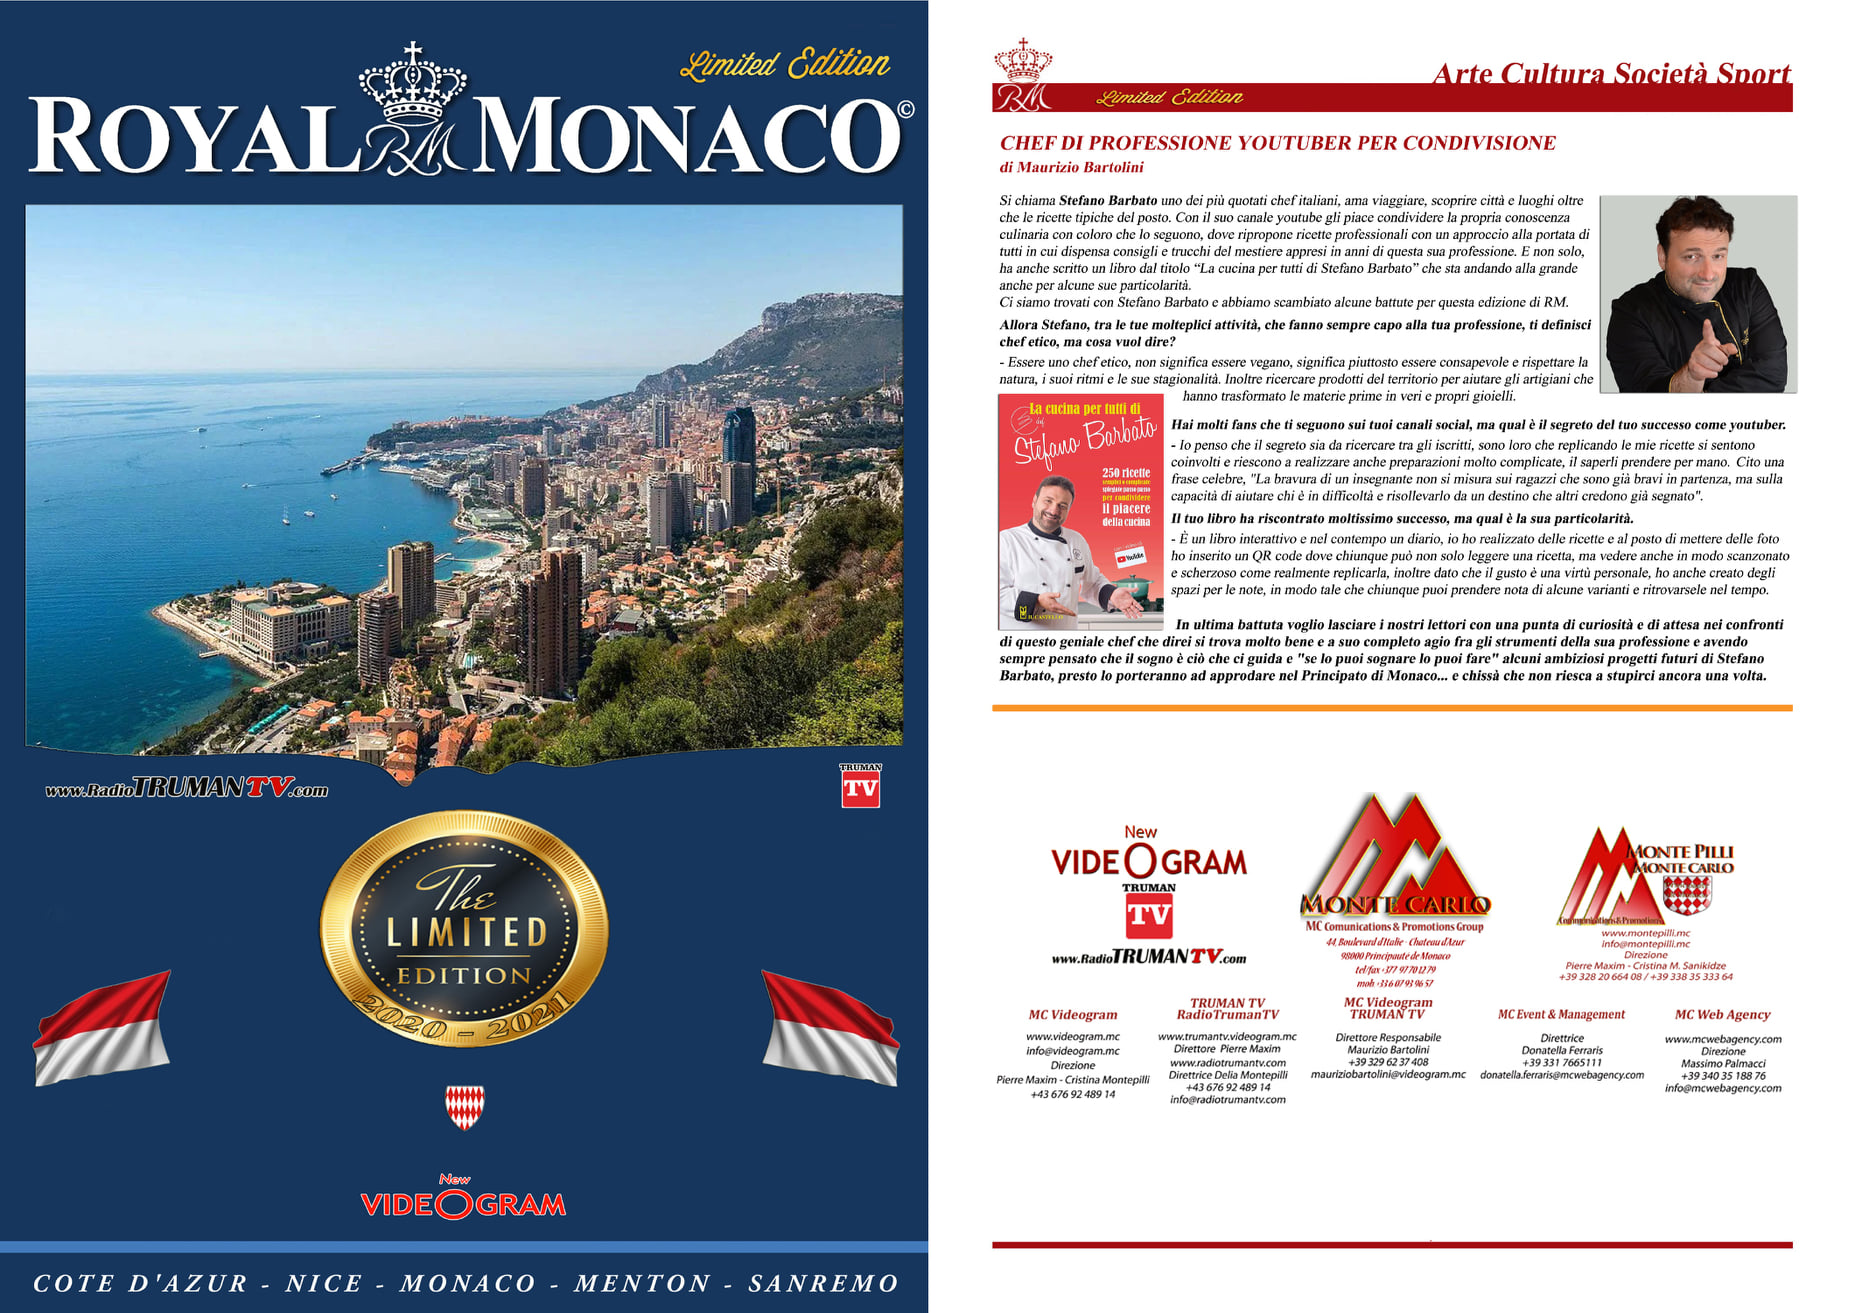 Copertina Royal Monaco Stefano Barbato Chef